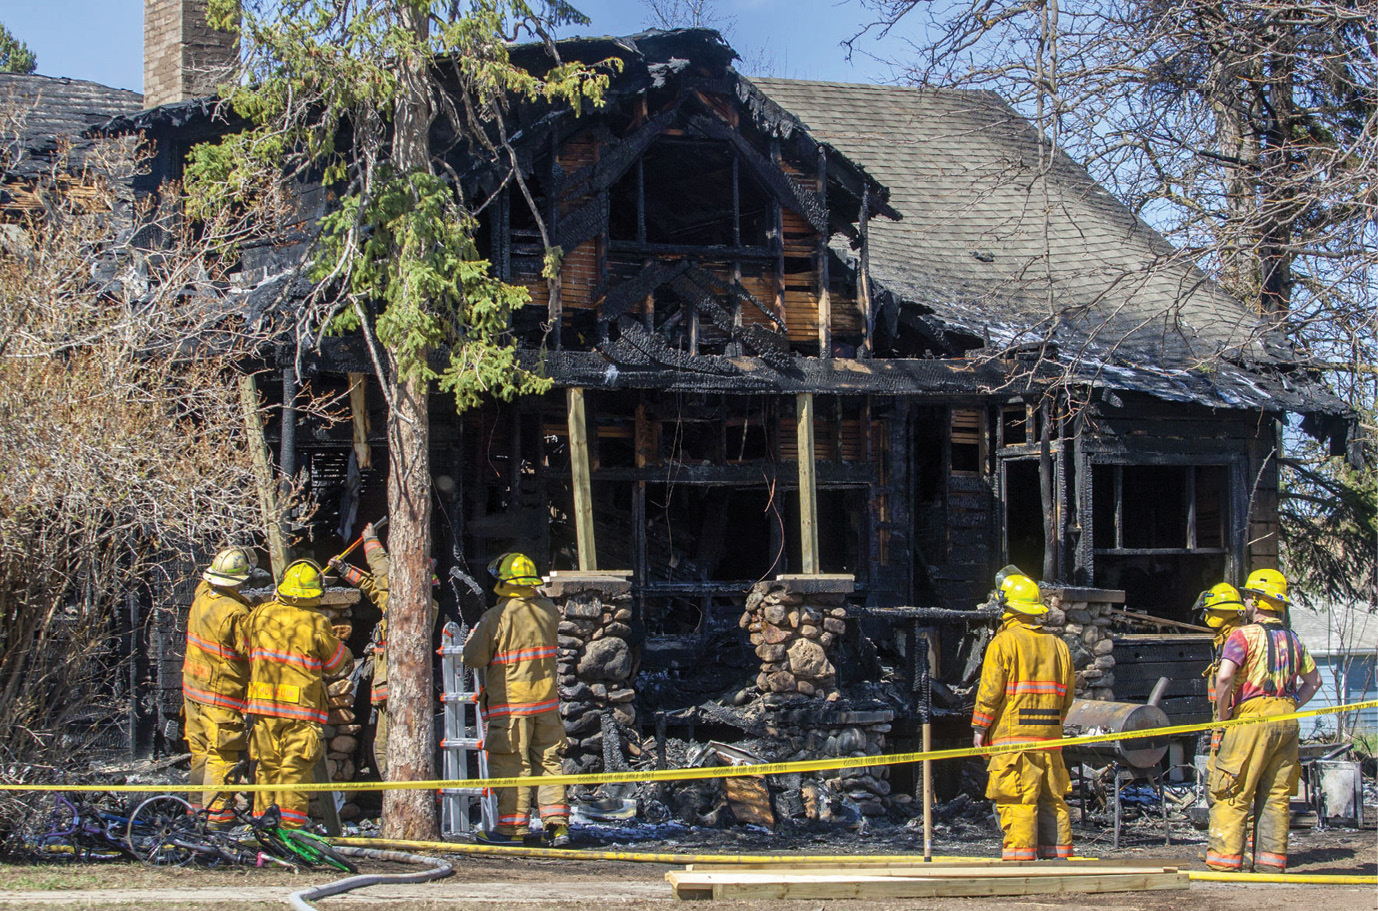 Firefighters work on the remains of a house fire in South Dakota that claimed the lives of five children